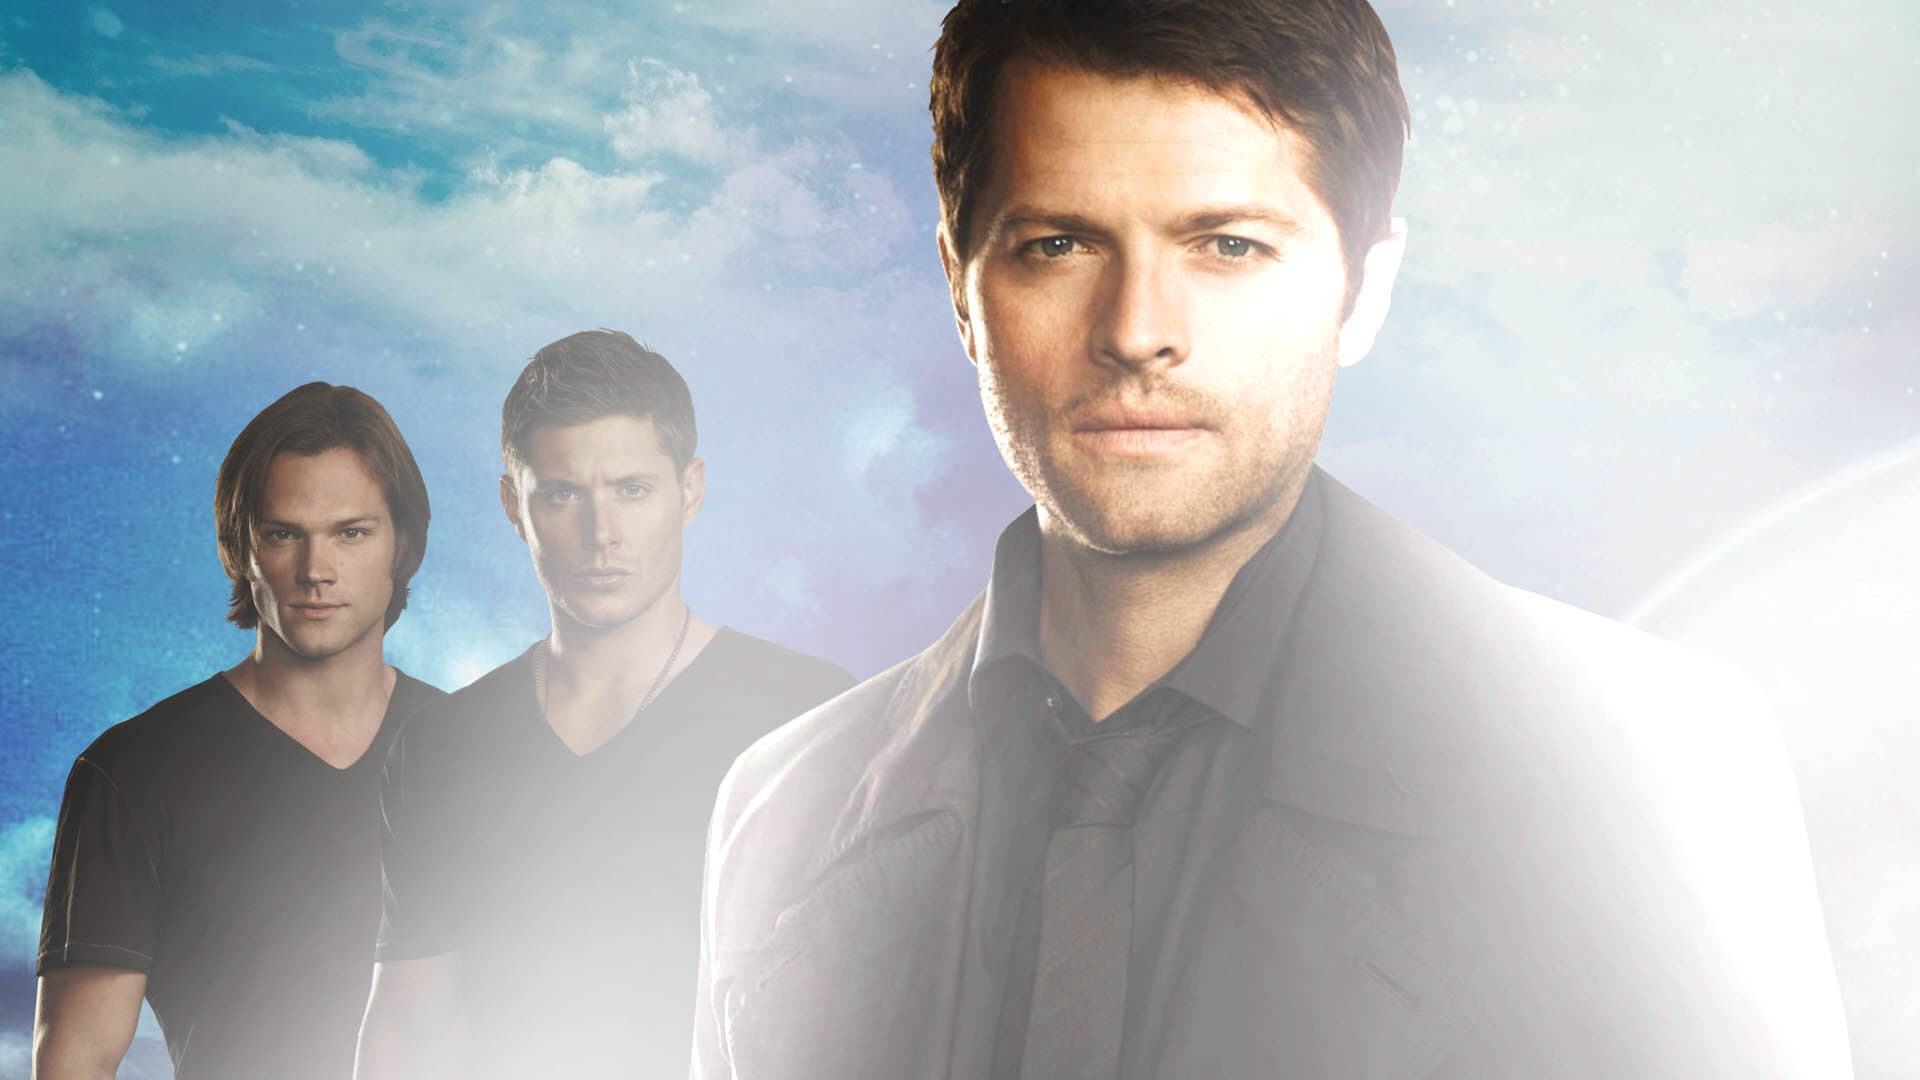 Supernatural - Season 12 Episode 12 Stuck in the Middle (With You)